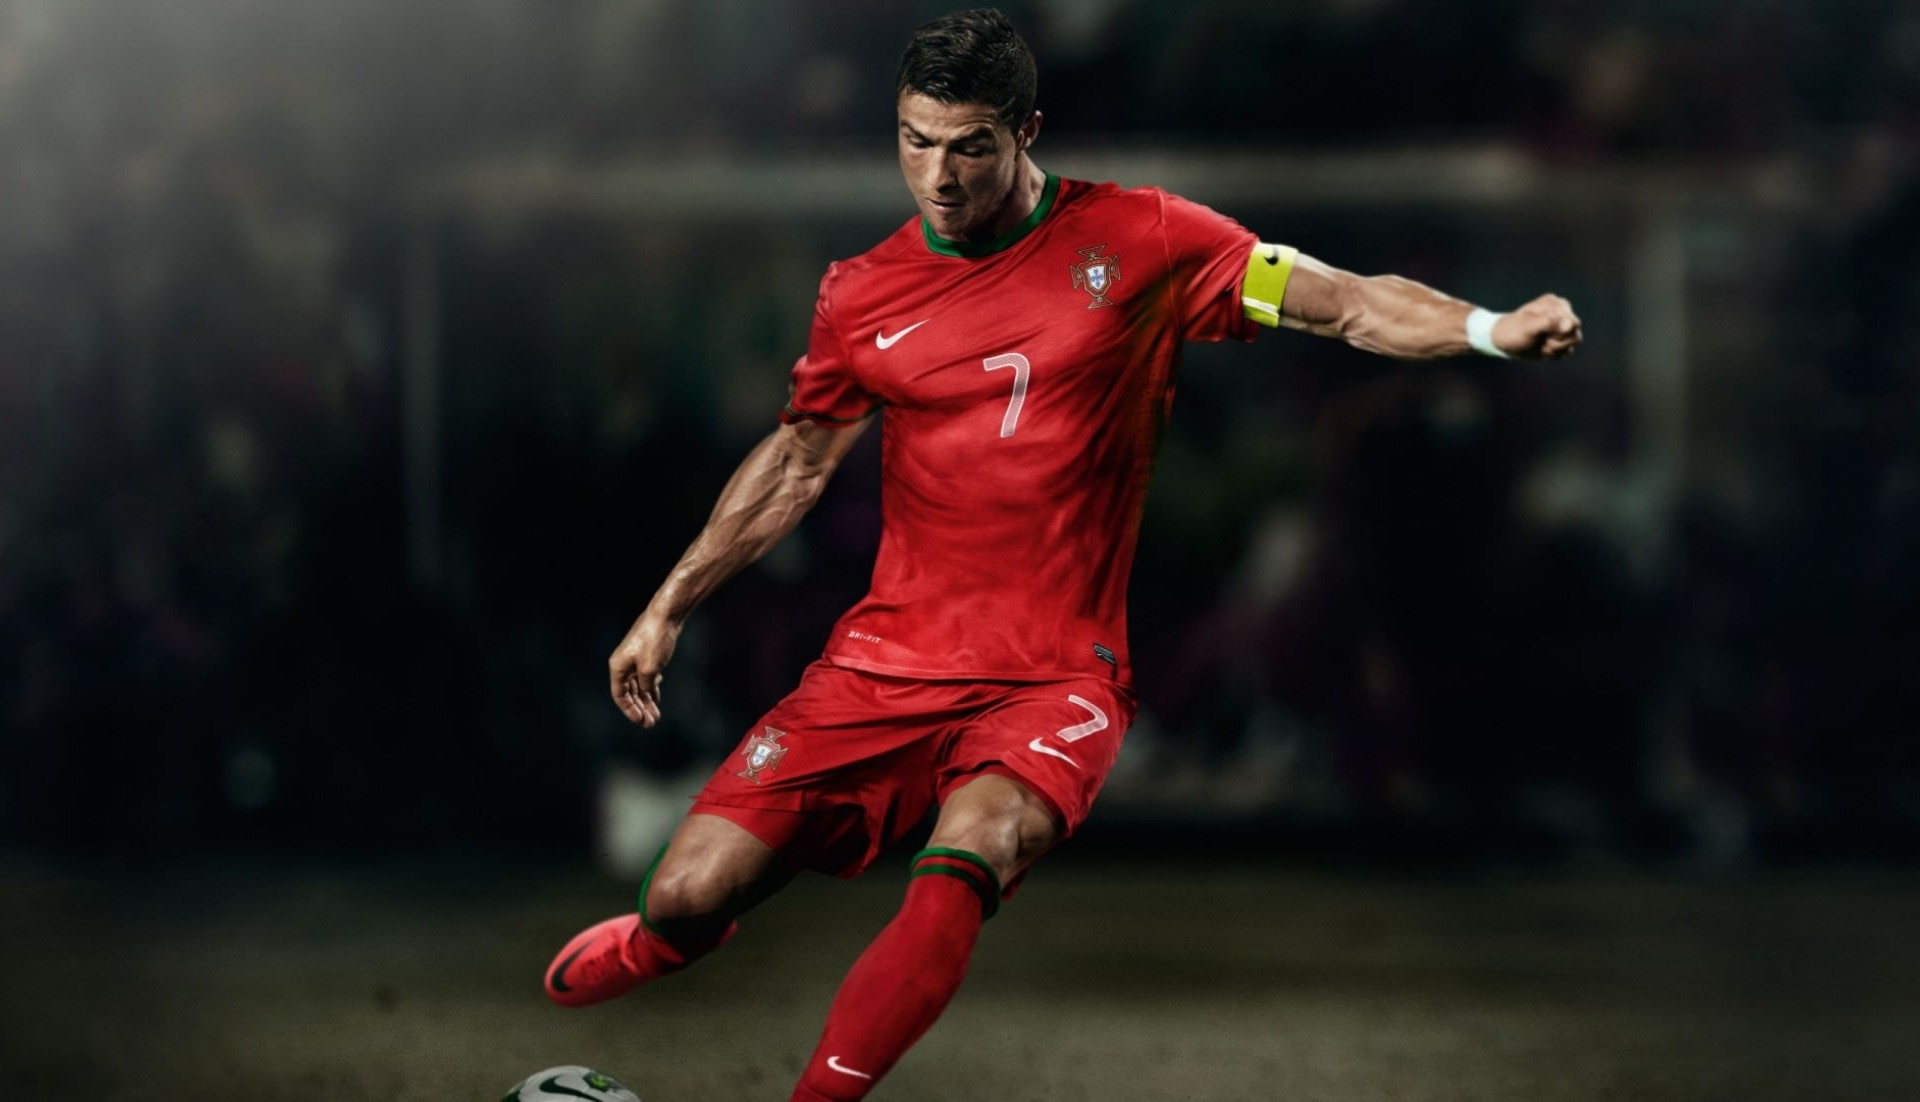 Cr7 Wallpaper Iphone Cristiano Ronaldo Portugal Free Kick Wallpaper Cristiano